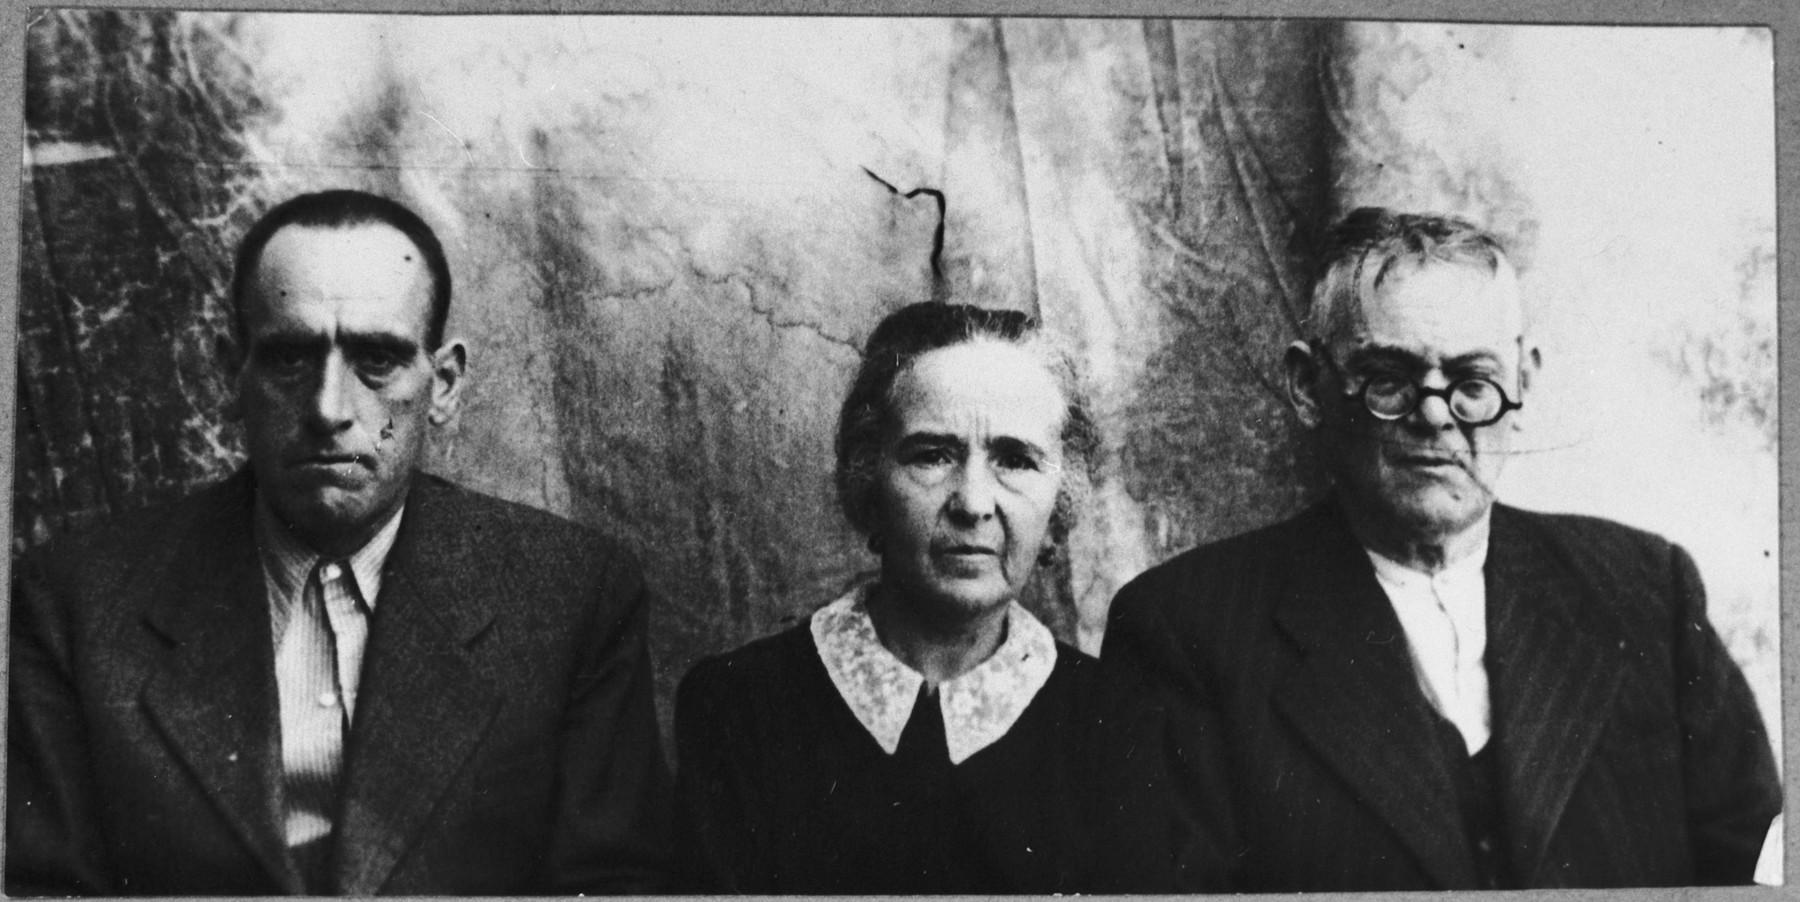 Portrait of Mushon Assael, his wife, Sara, and his son, Yosef.  They lived at Karagoryeva 50 in Bitola.